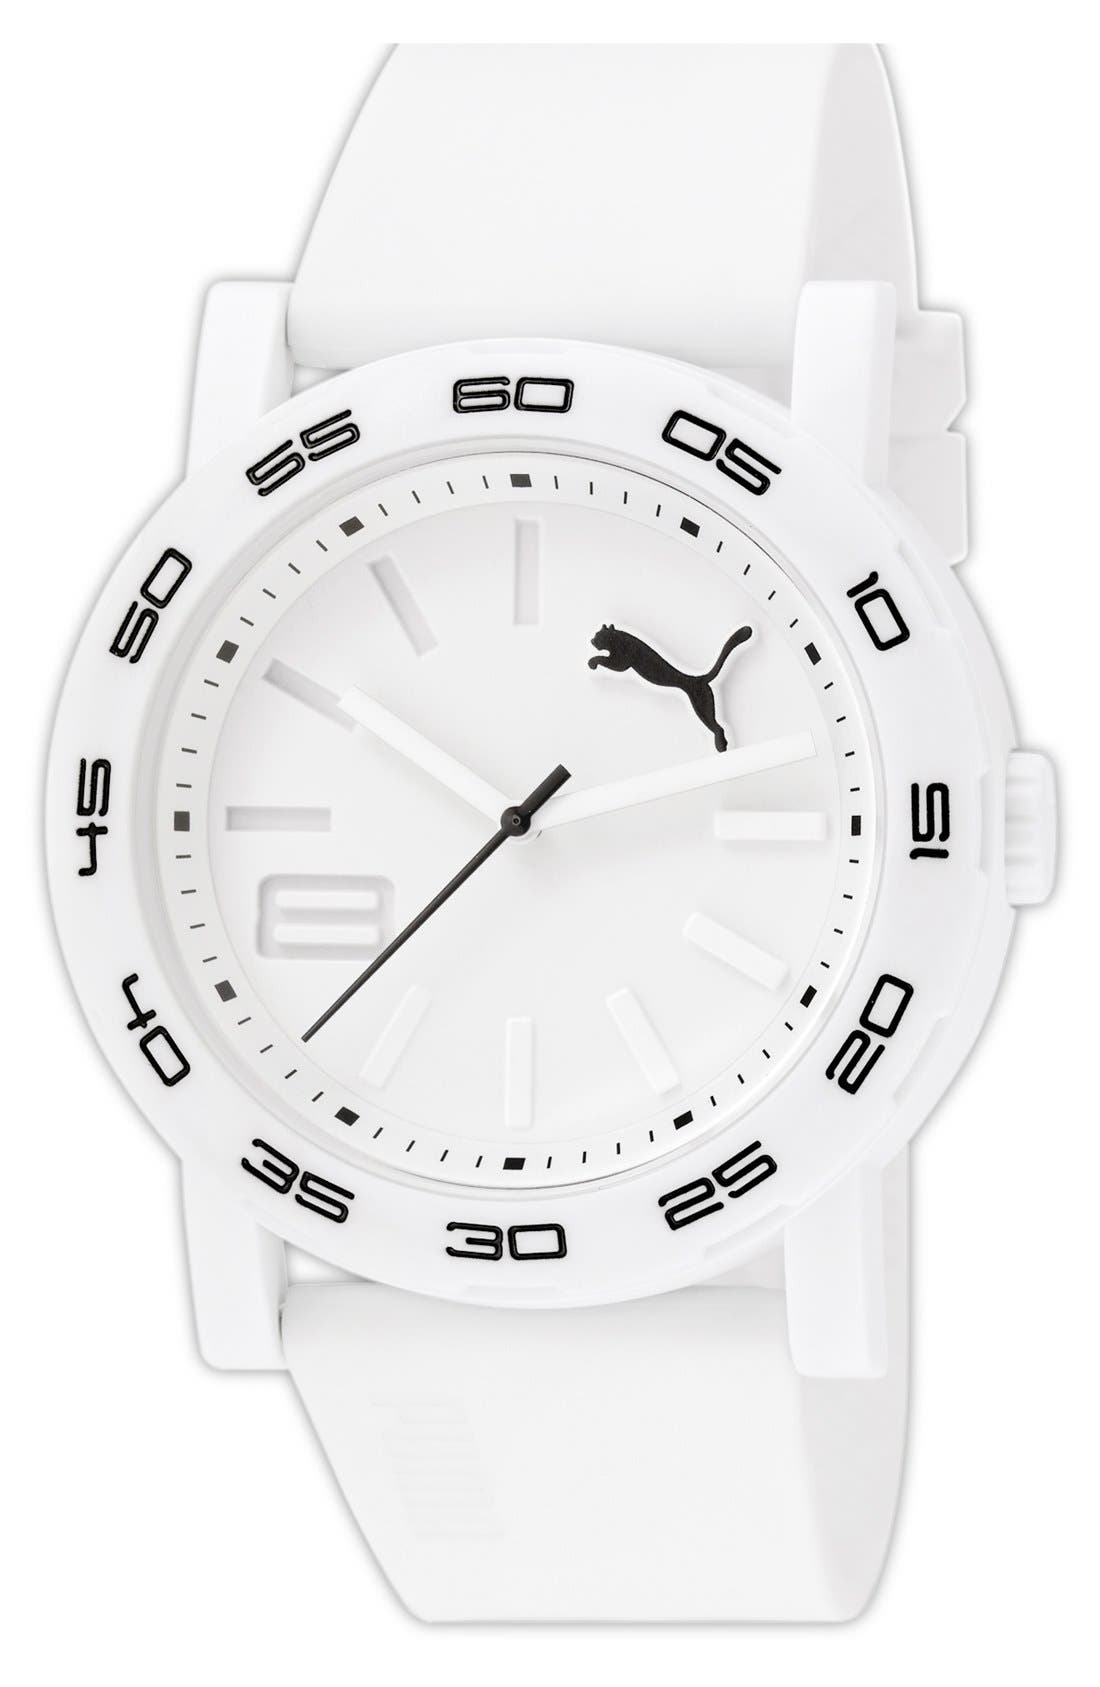 Main Image - PUMA 'Move' Round Watch, 45mm